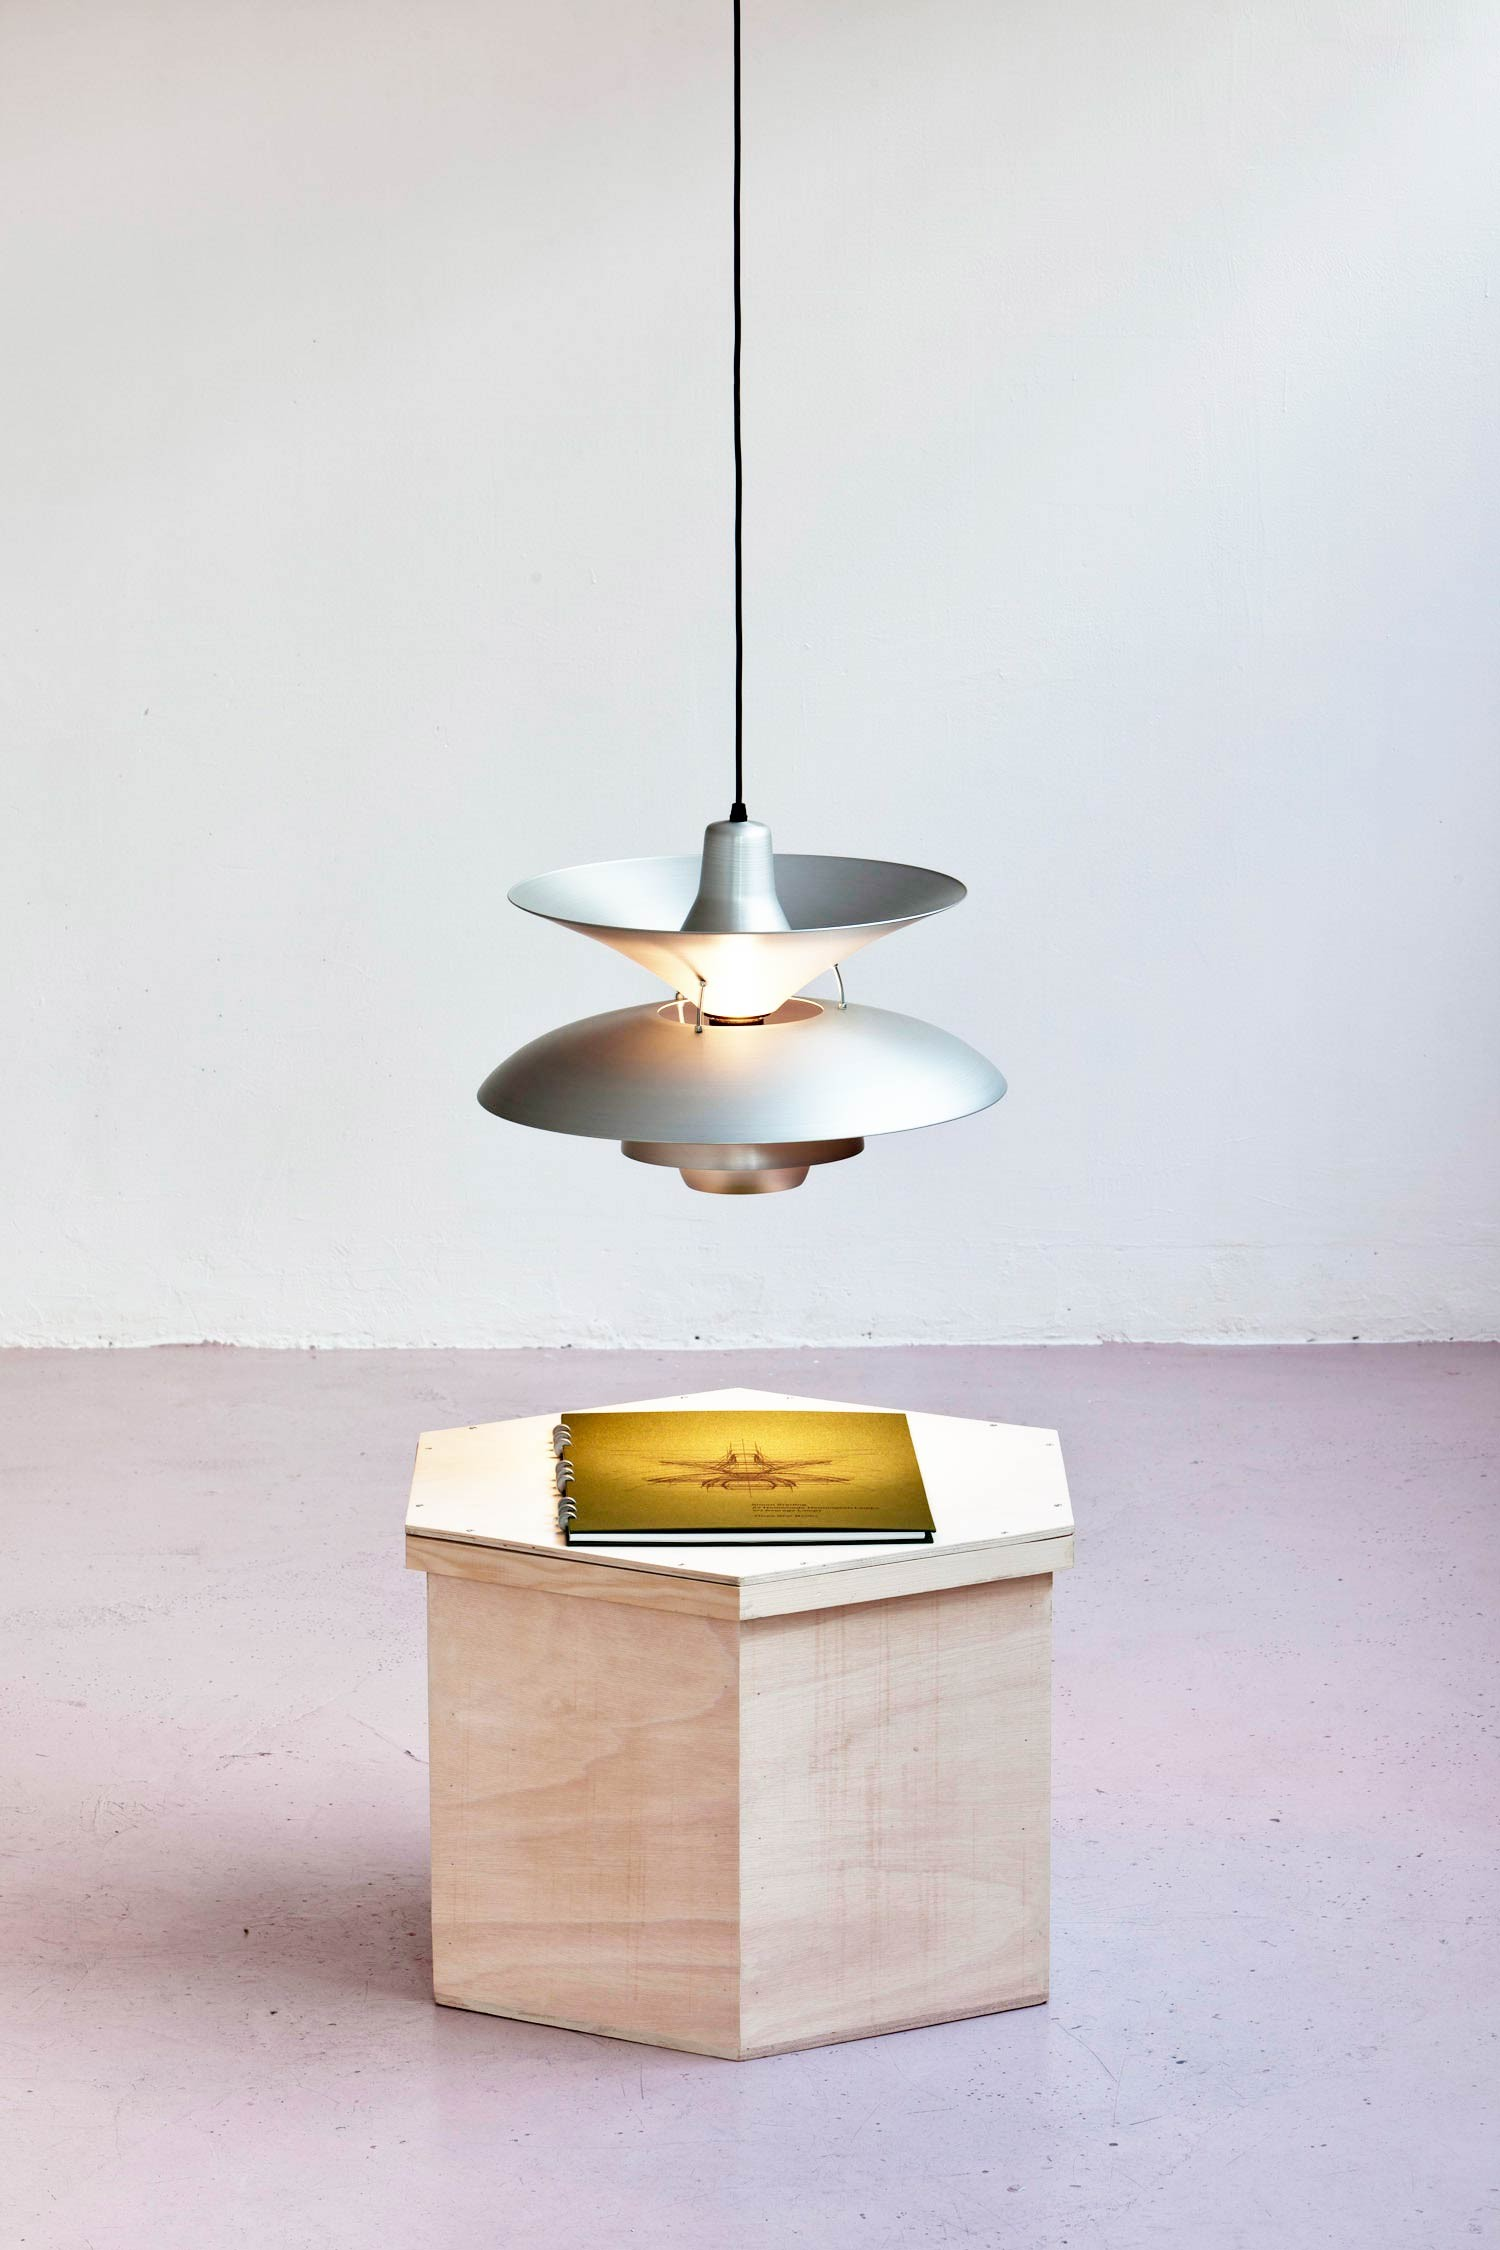 buy simon starling 27 homemade henningsen lamps 1 average 2011 simon starling 27 homemade henningsen lamps 1 average lamp 2011